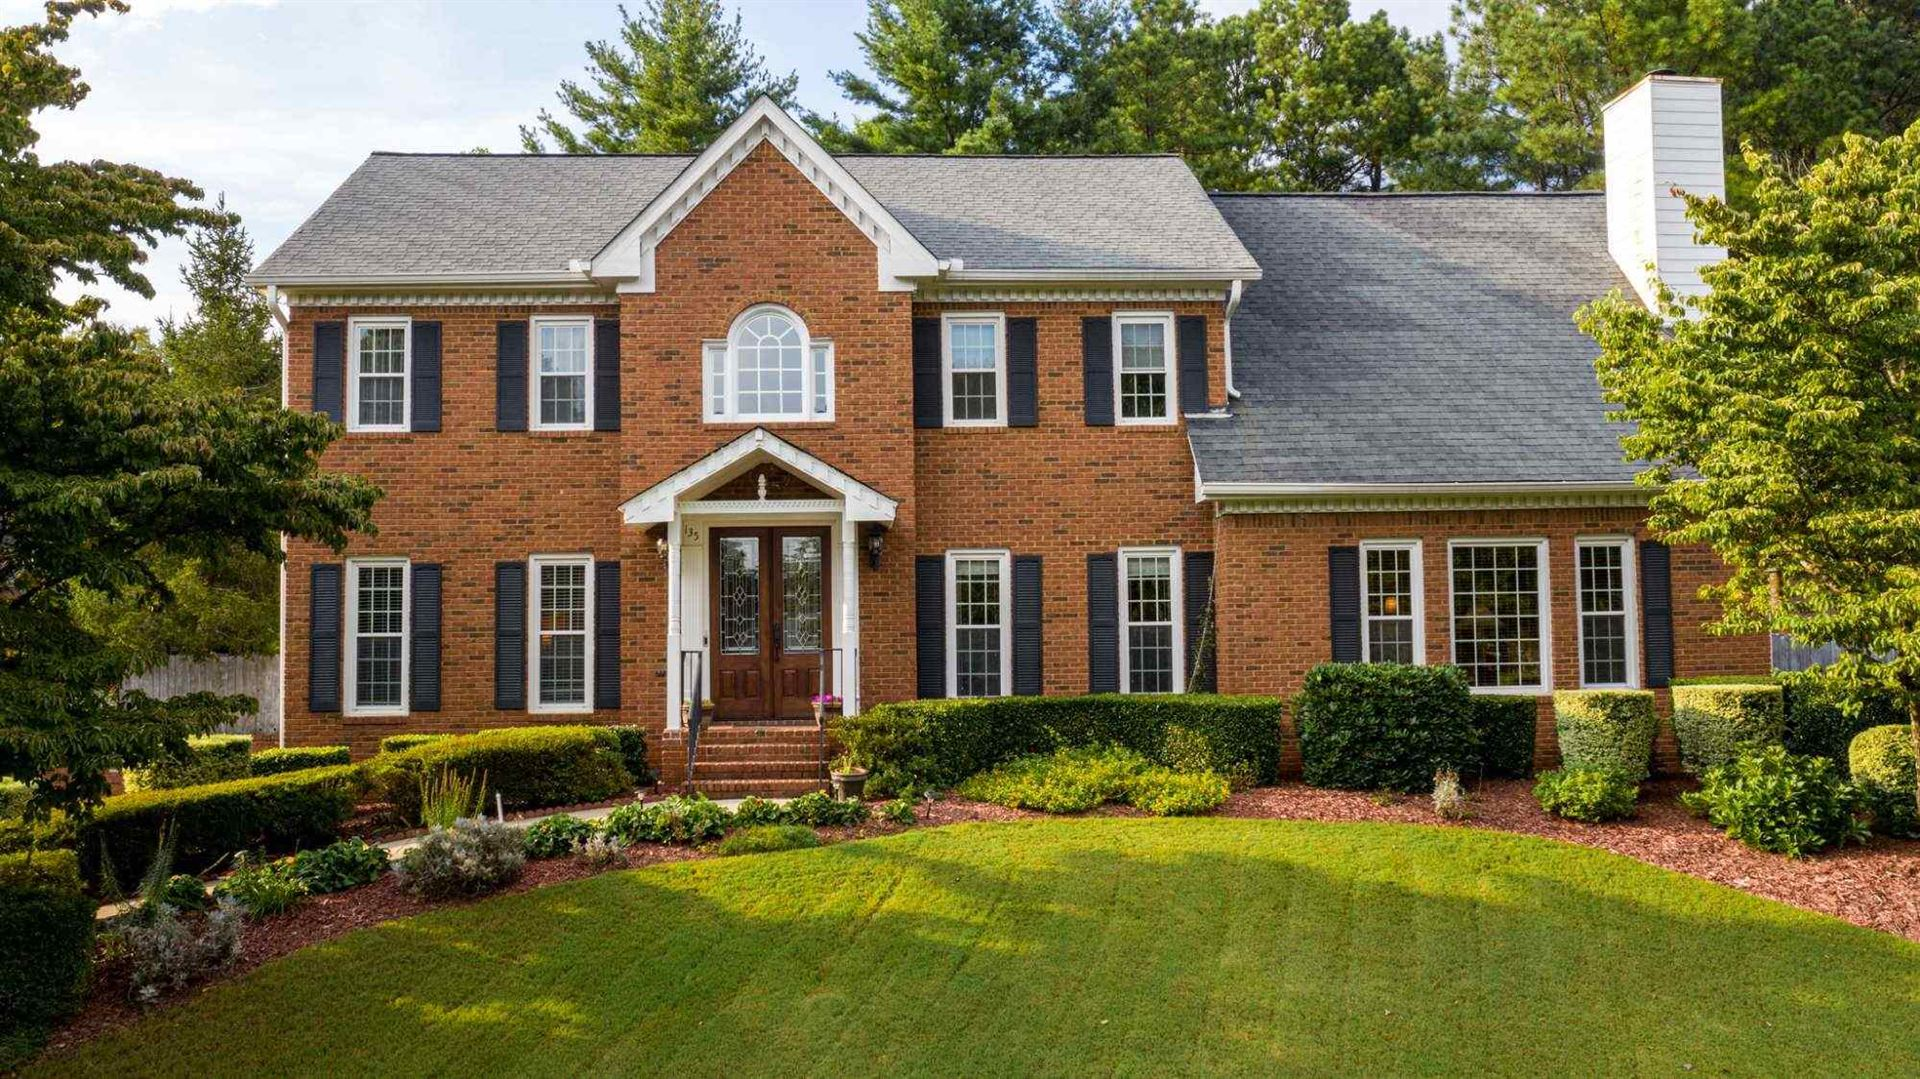 135 Sandridge Ct, Alpharetta, GA 30022 - MLS#: 8849678